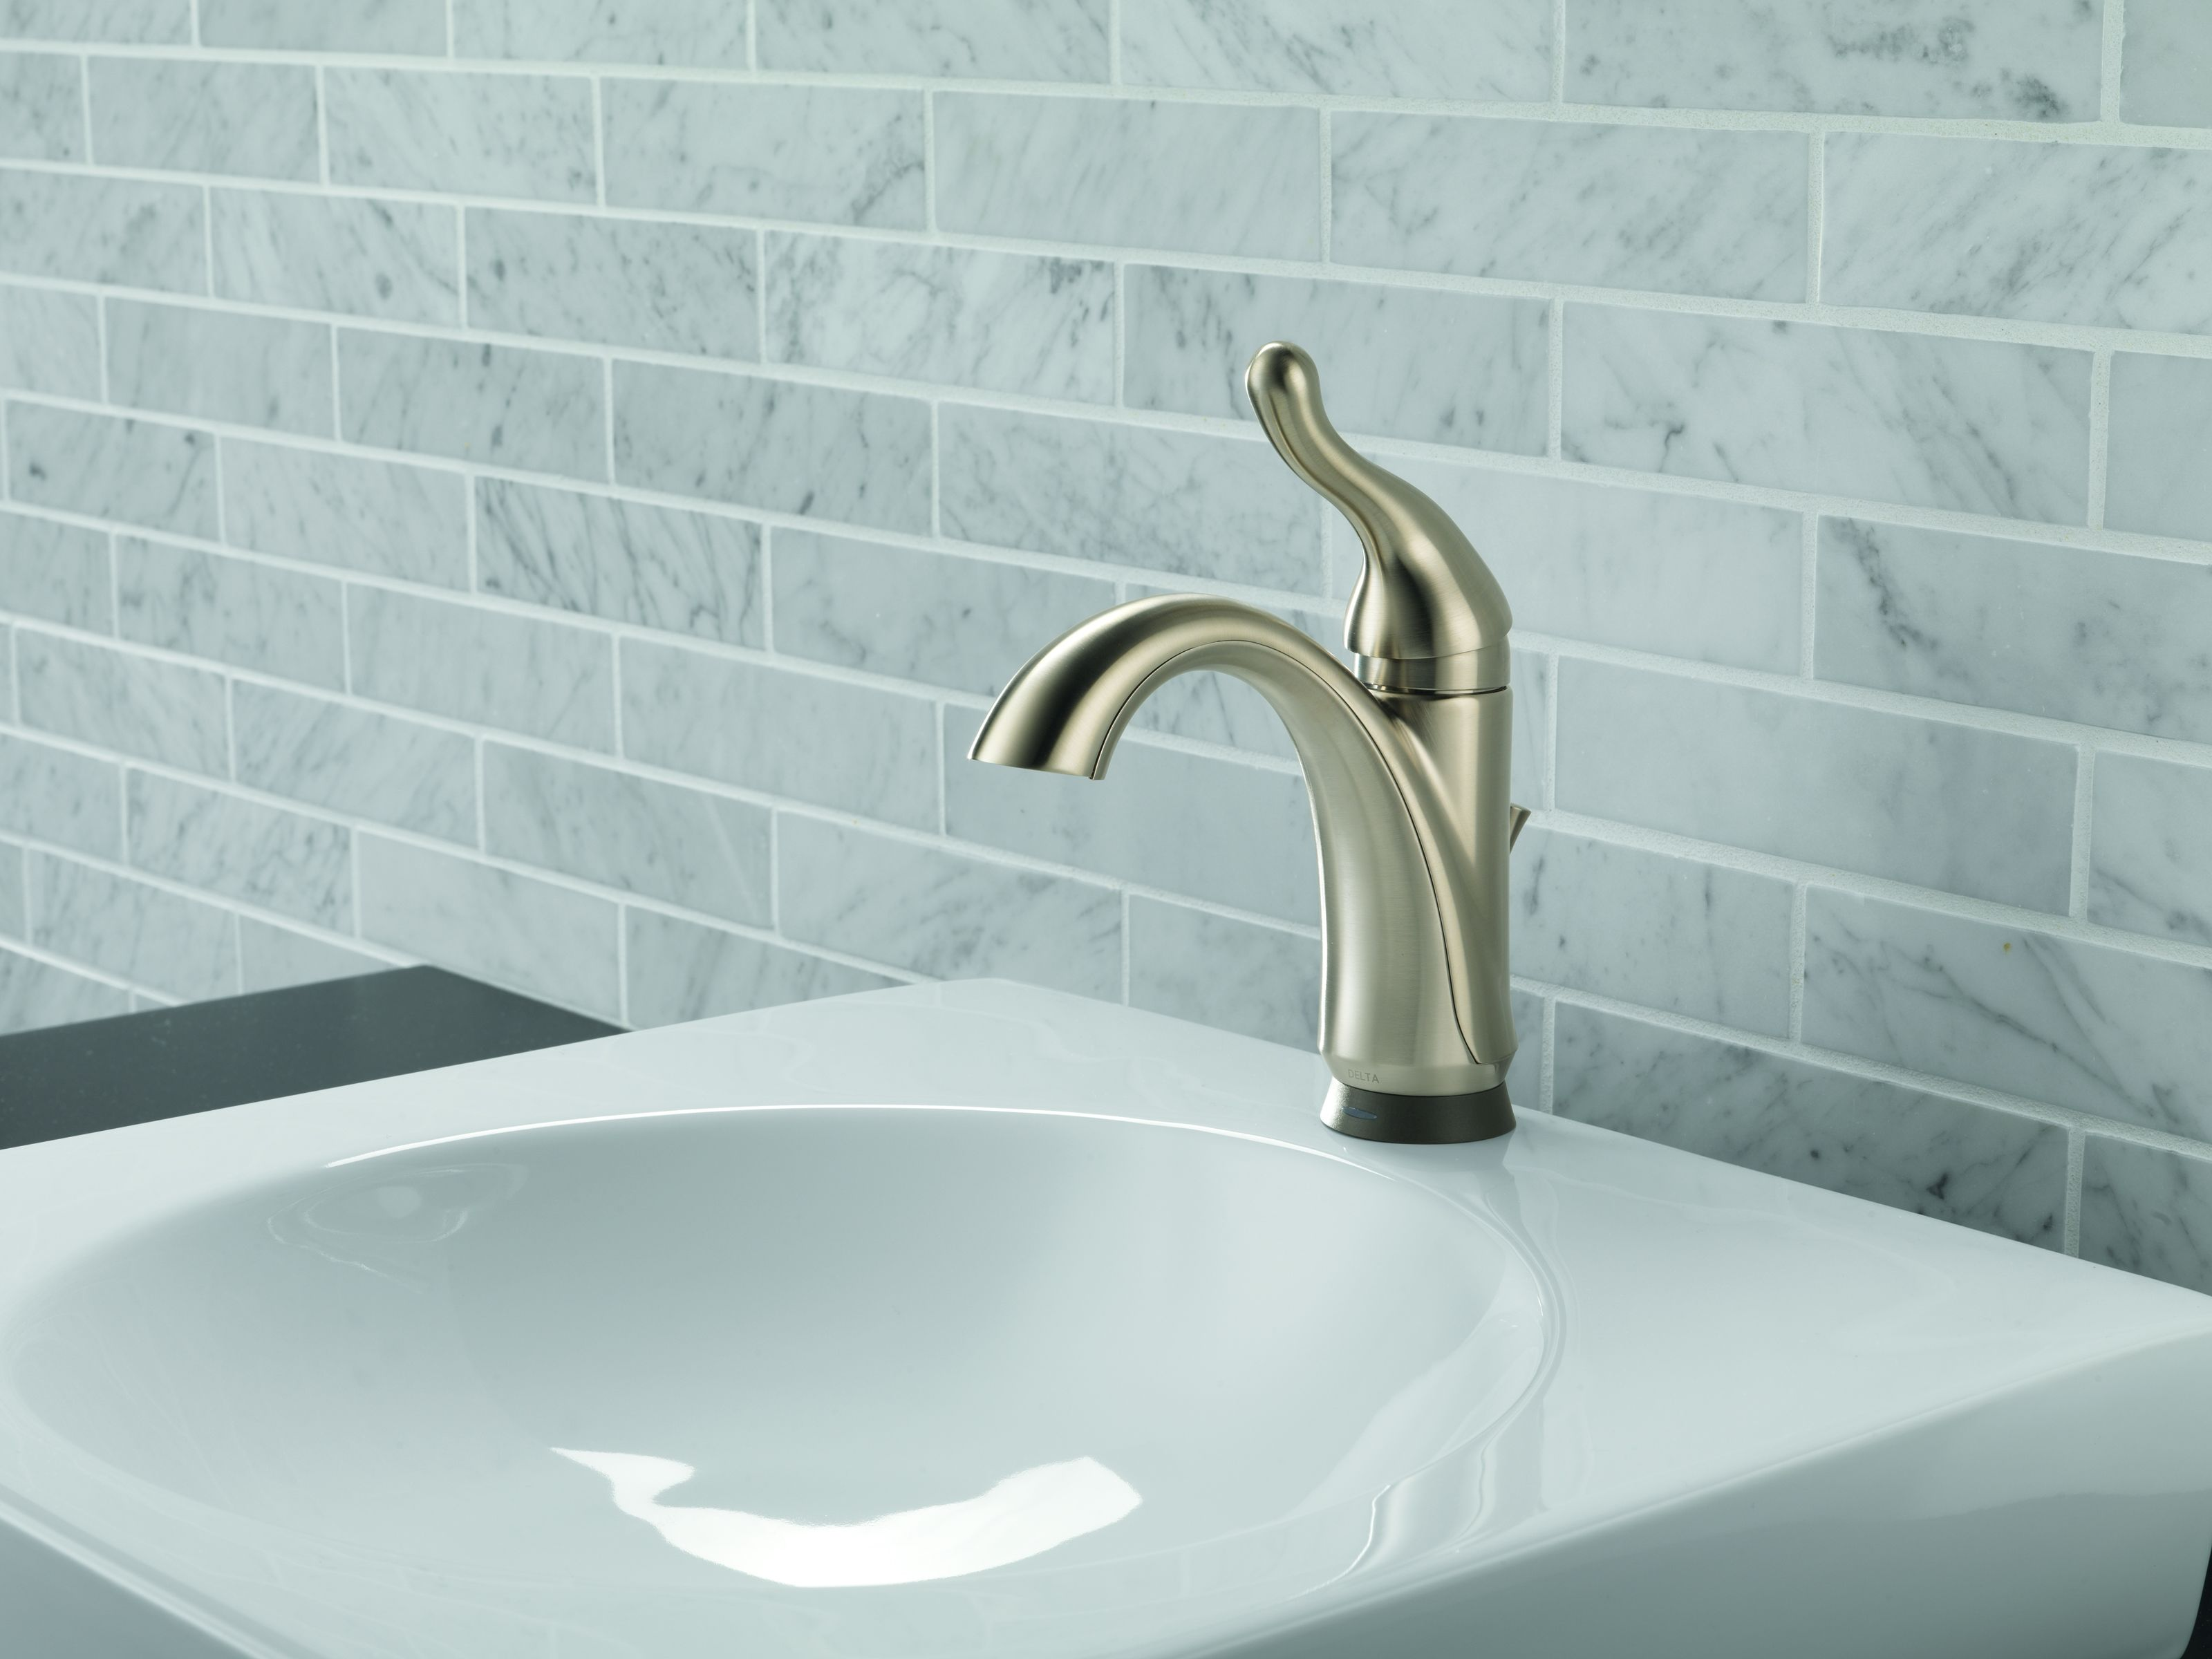 Bathroom Faucet Keeps Running bathroom faucet keeps running - bathroom design concept